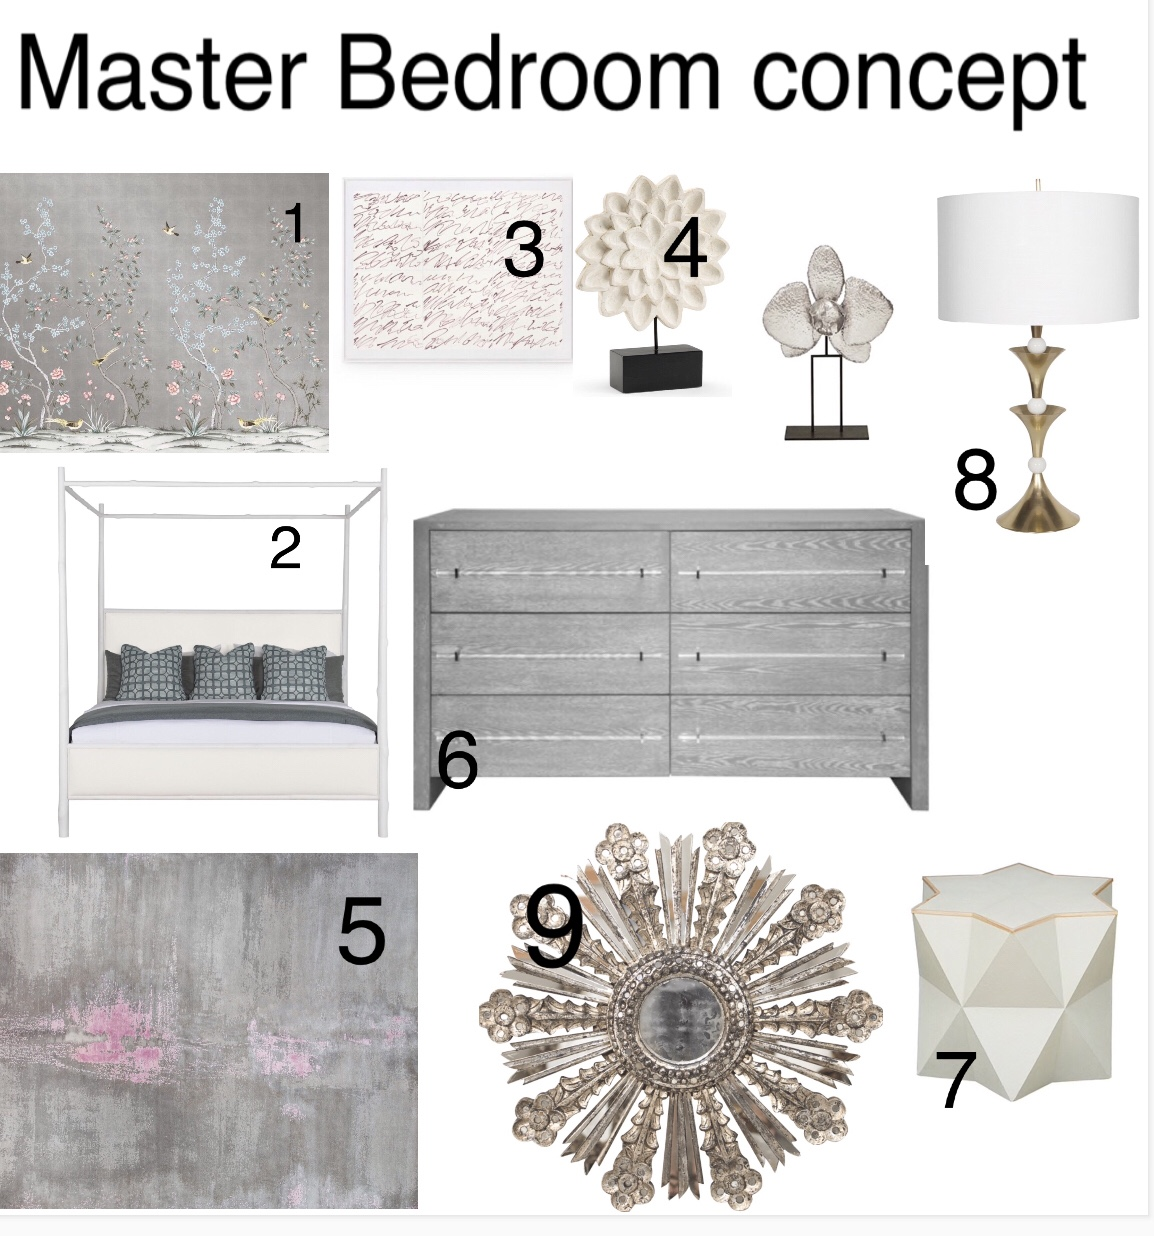 Modern concept for Master bedroom design, with some eclectic decor